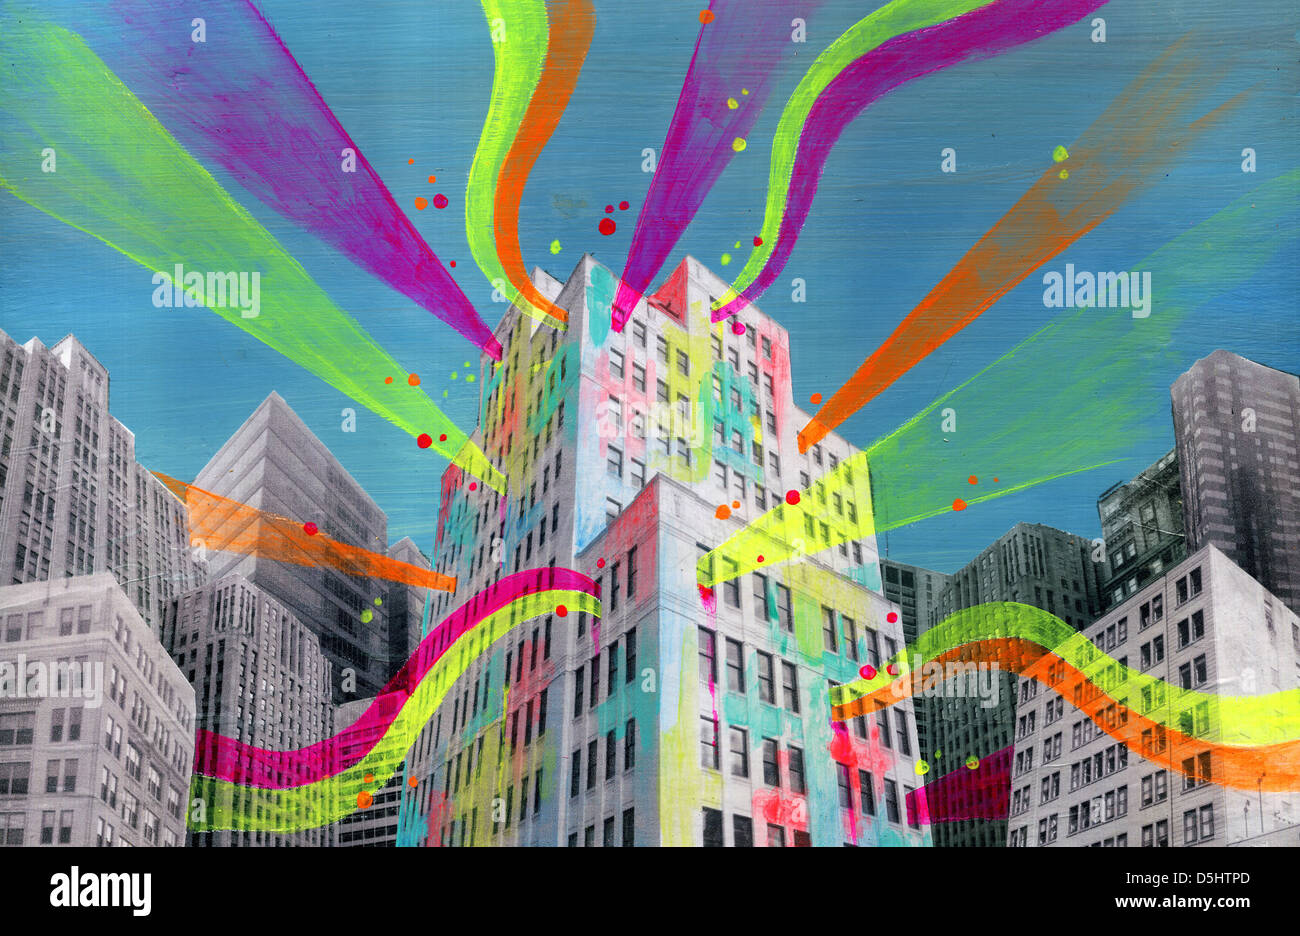 Illustration of building emitting lights representing social networking Stock Photo